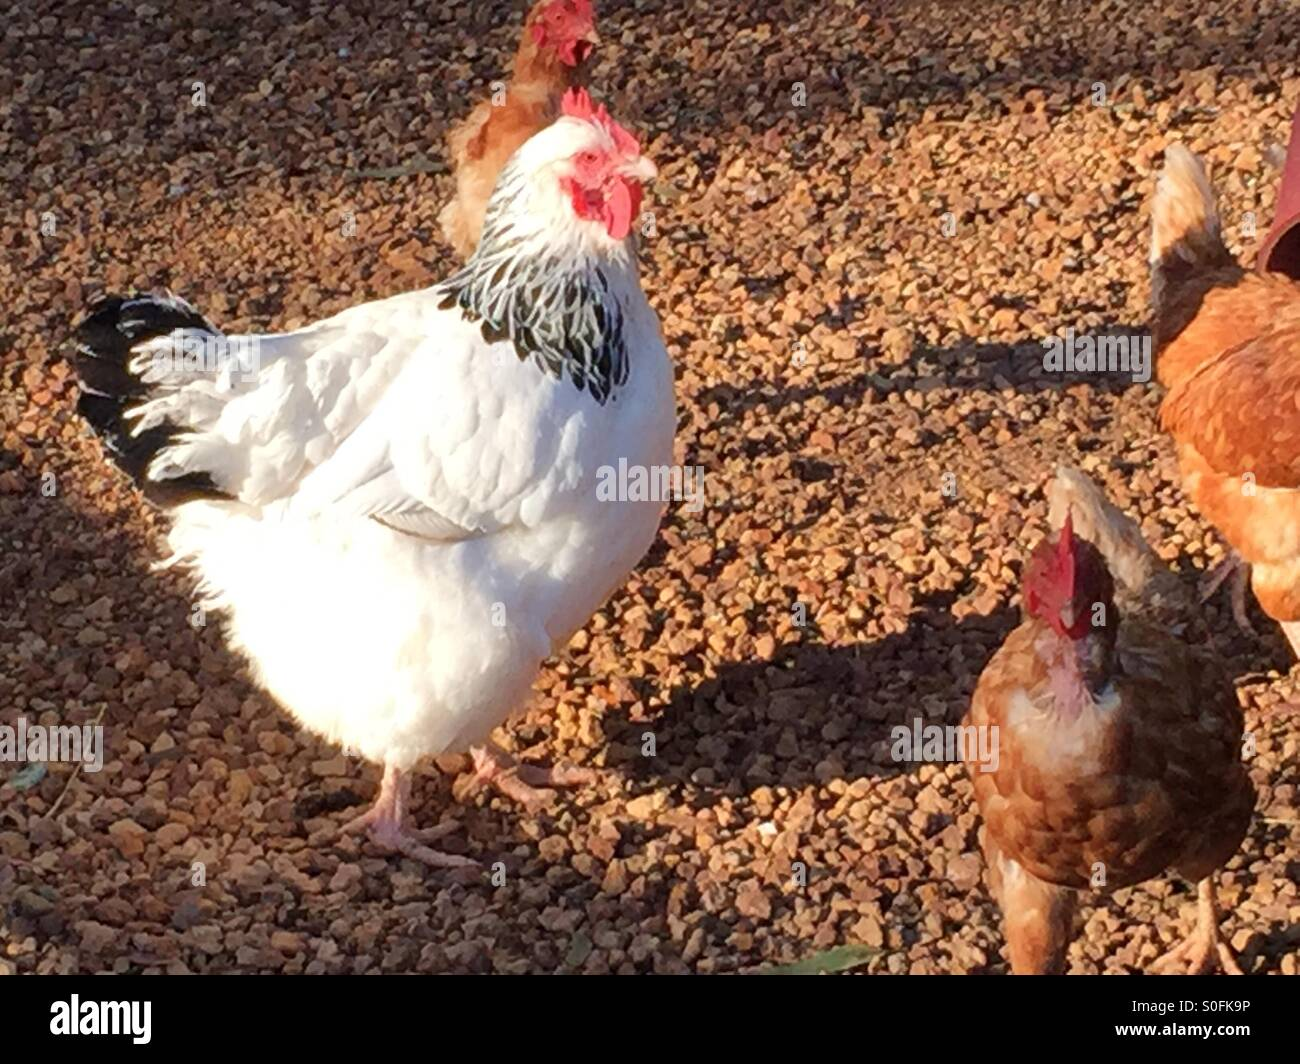 Chickens/hens on a farm - Stock Image